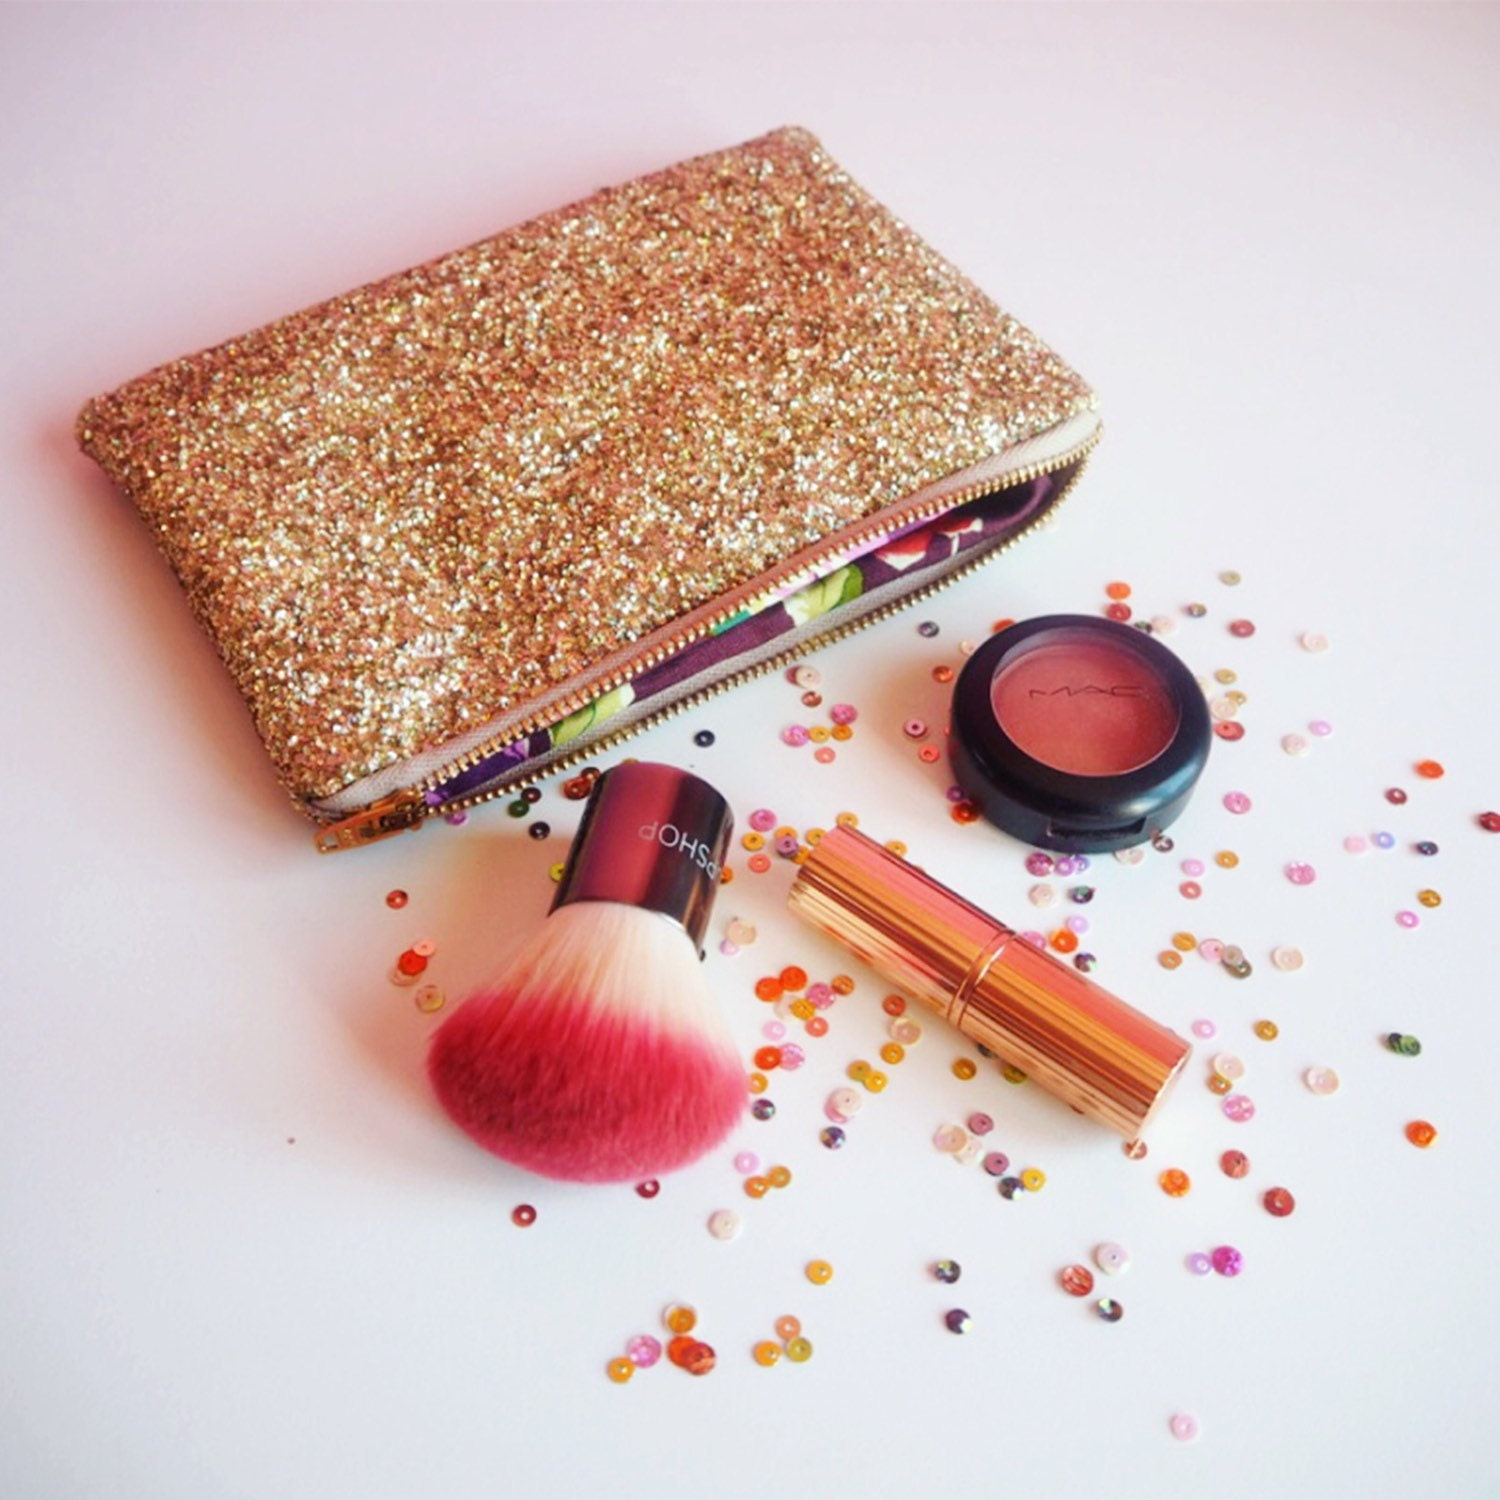 Gold Rainbow Glitter Makeup Bag Sparkly Gold Cosmetic Bag